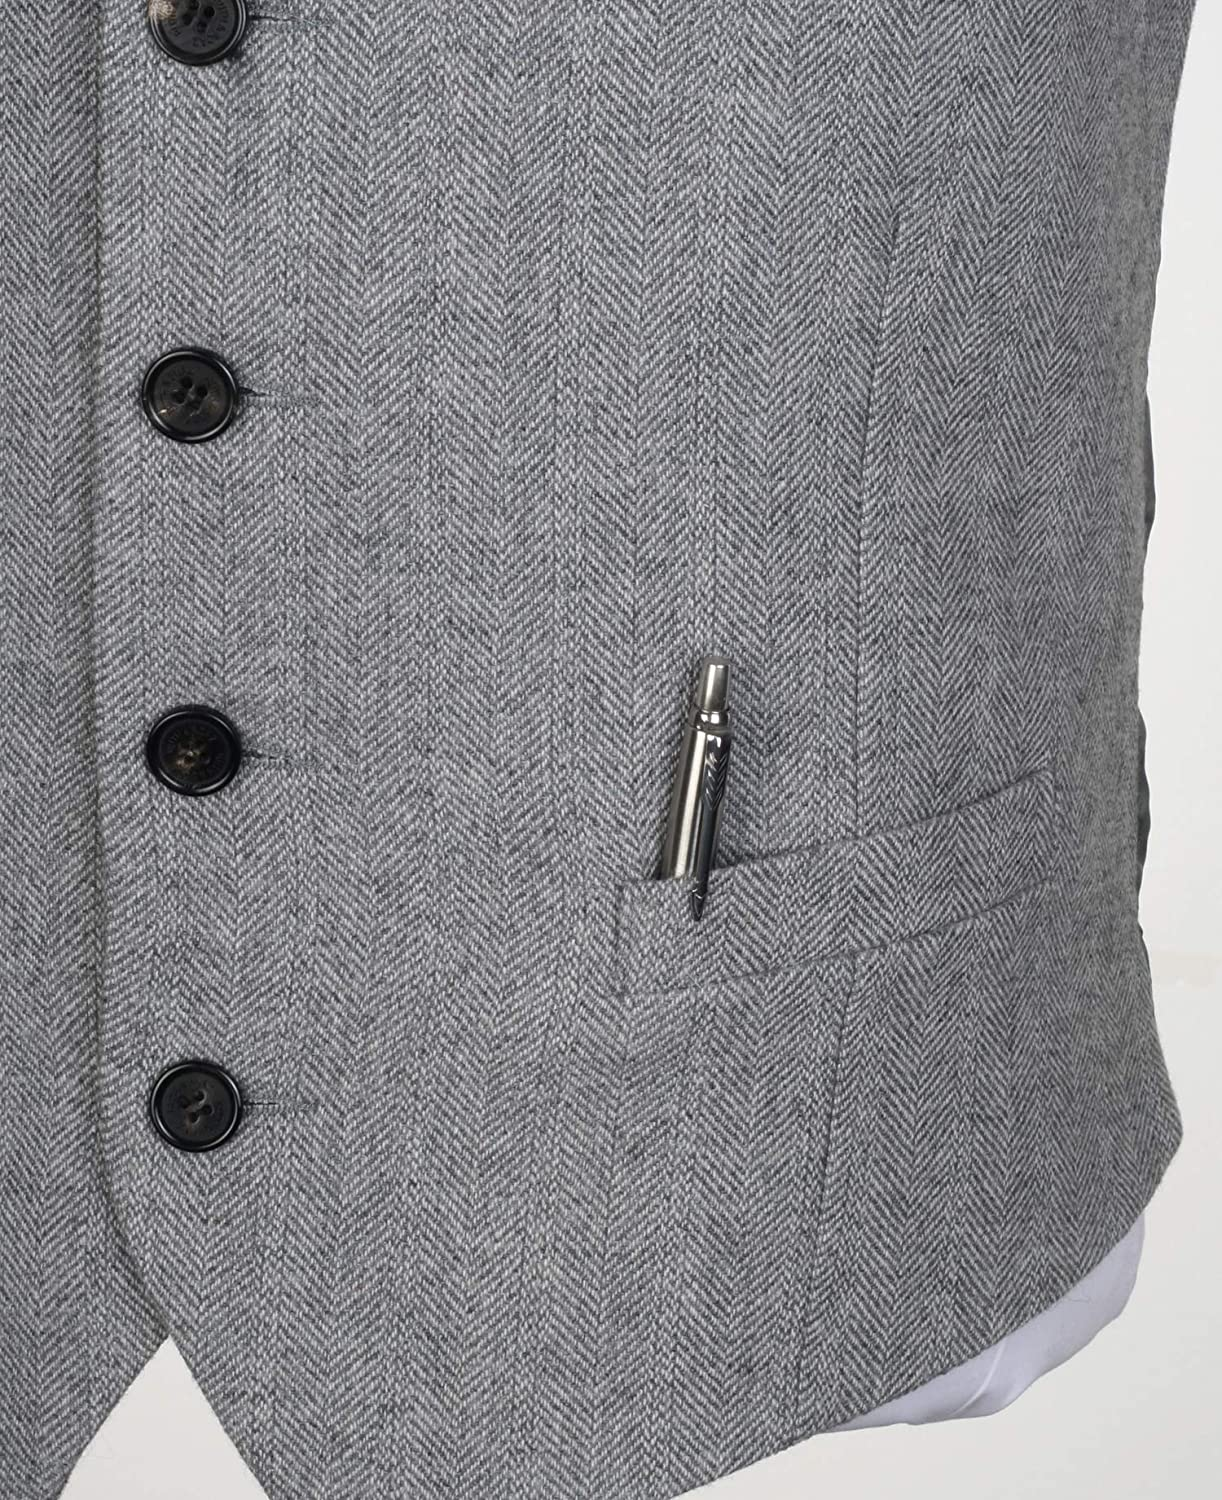 Ruth/&Boaz 2Pockets/4Buttons/Wool/Herringbone//Tweed/Tailored/Collar/Suit/Vest